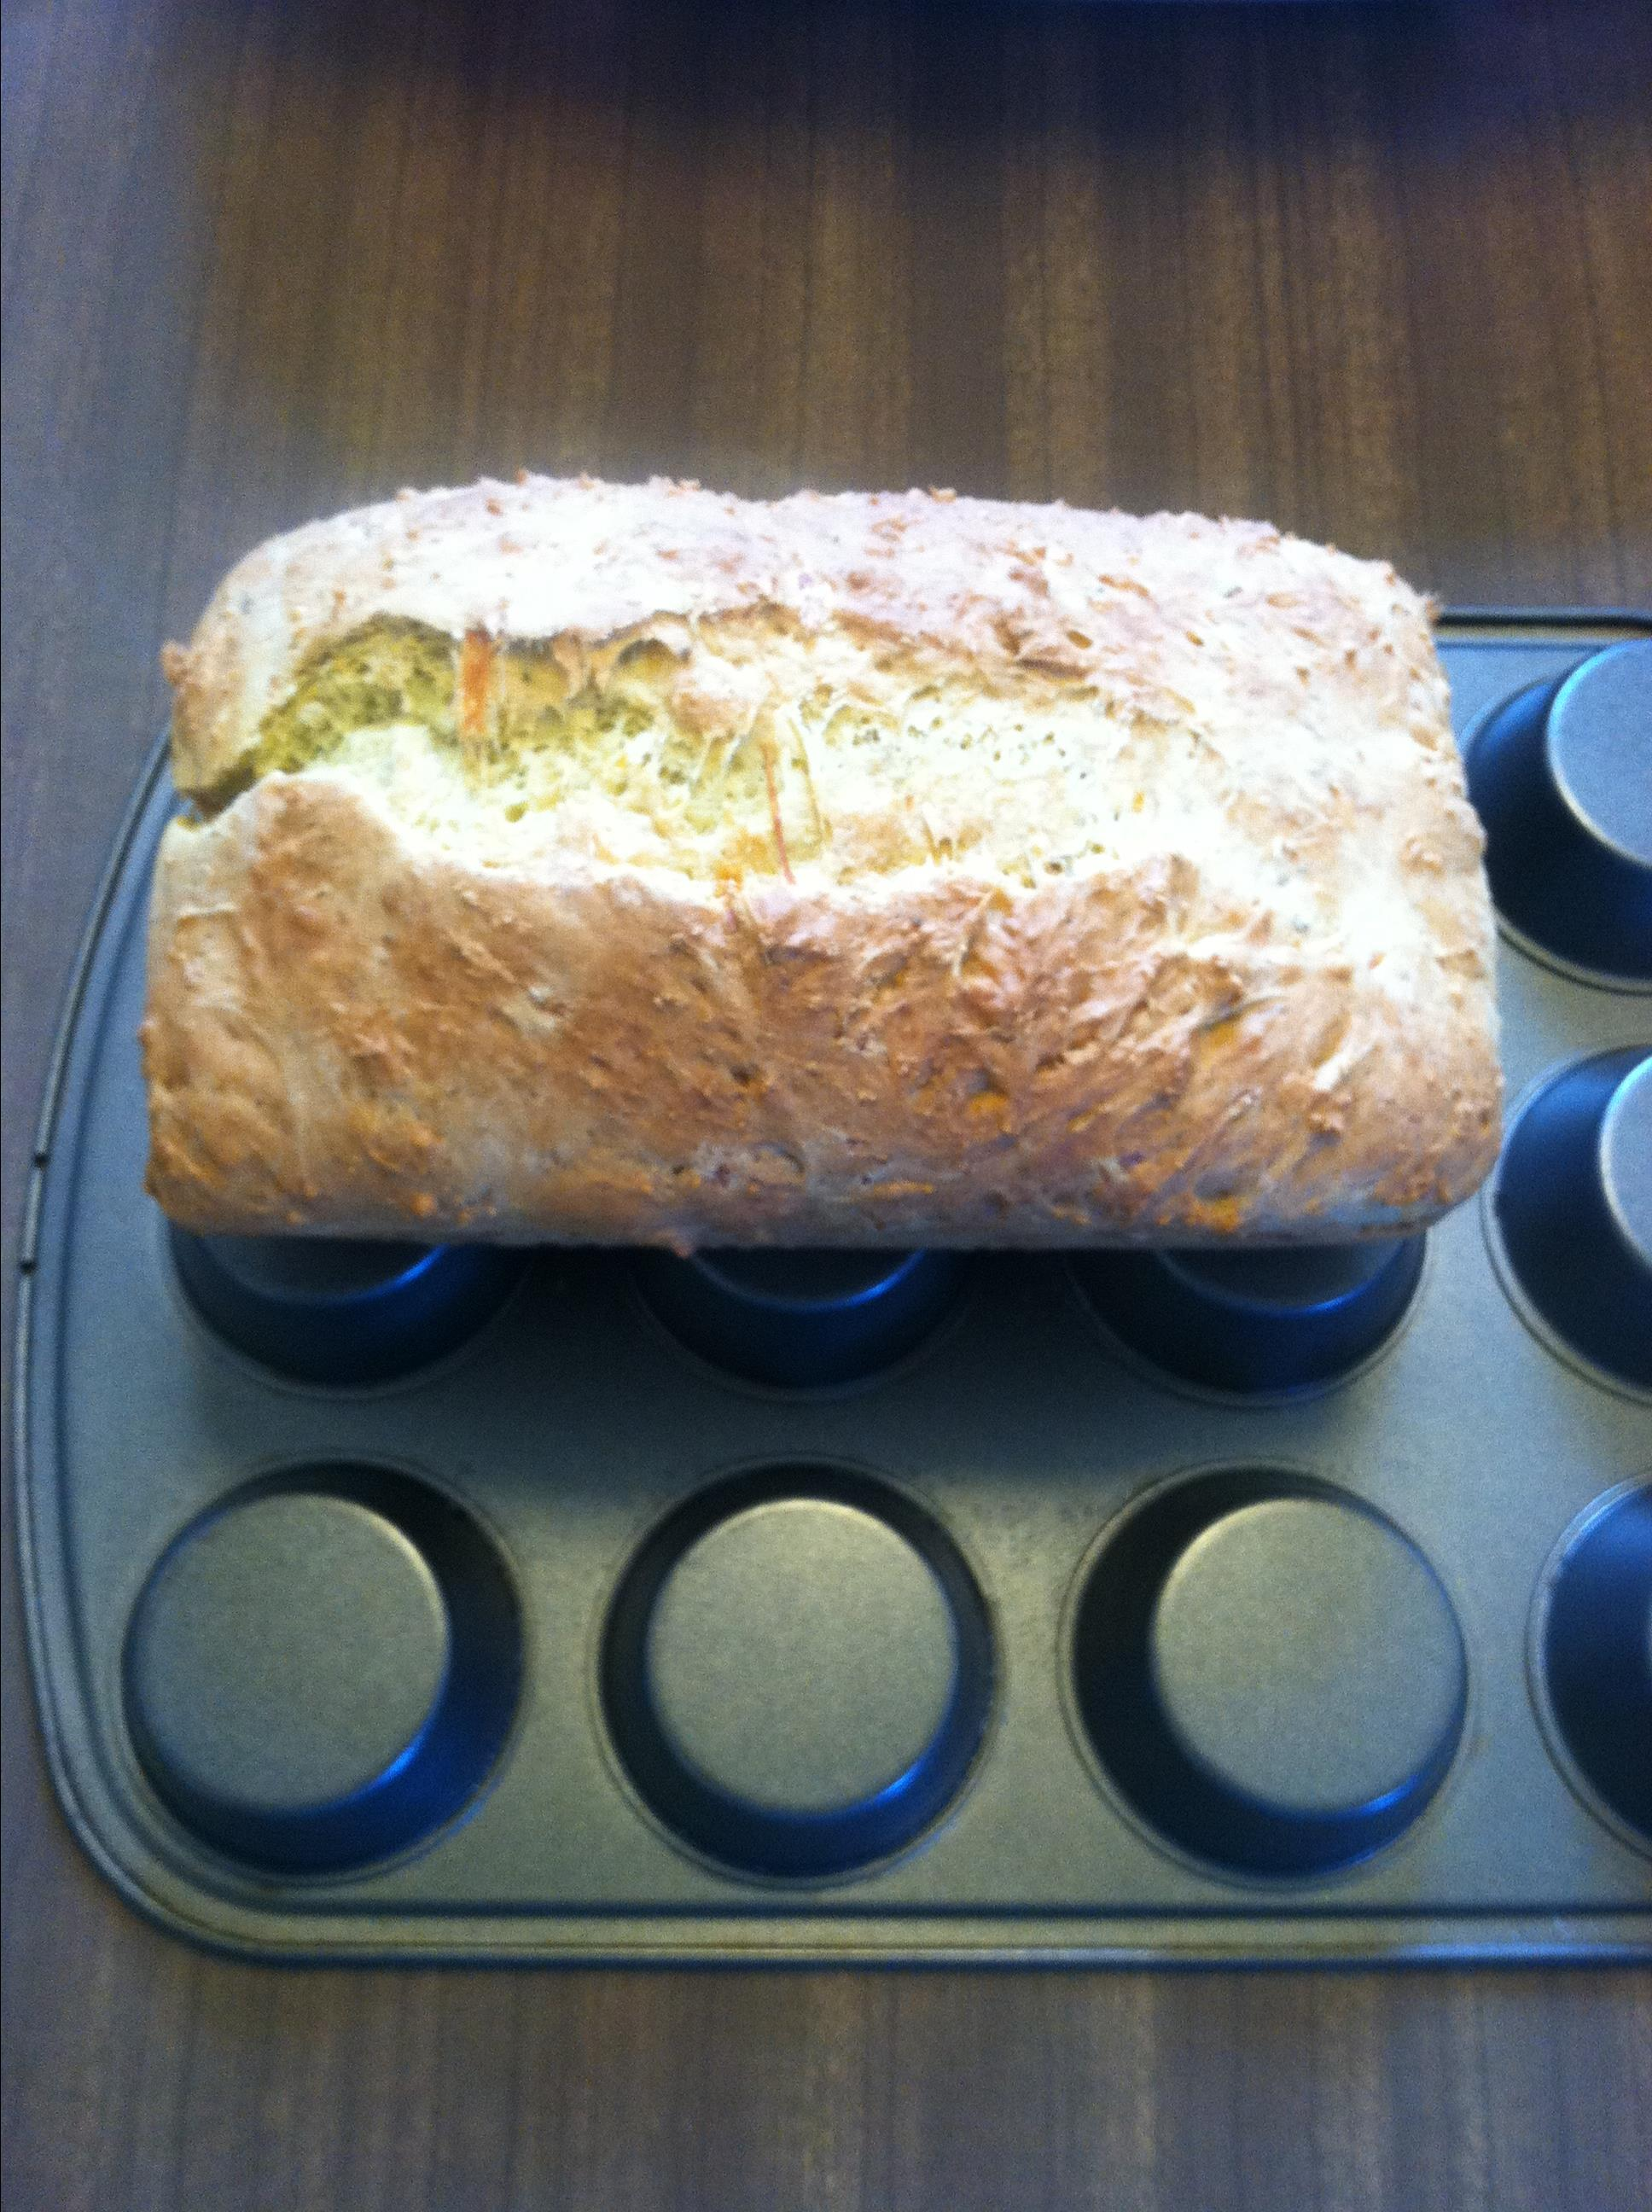 Green Chile Cheese Beer Bread Connie Molitor Bergeron